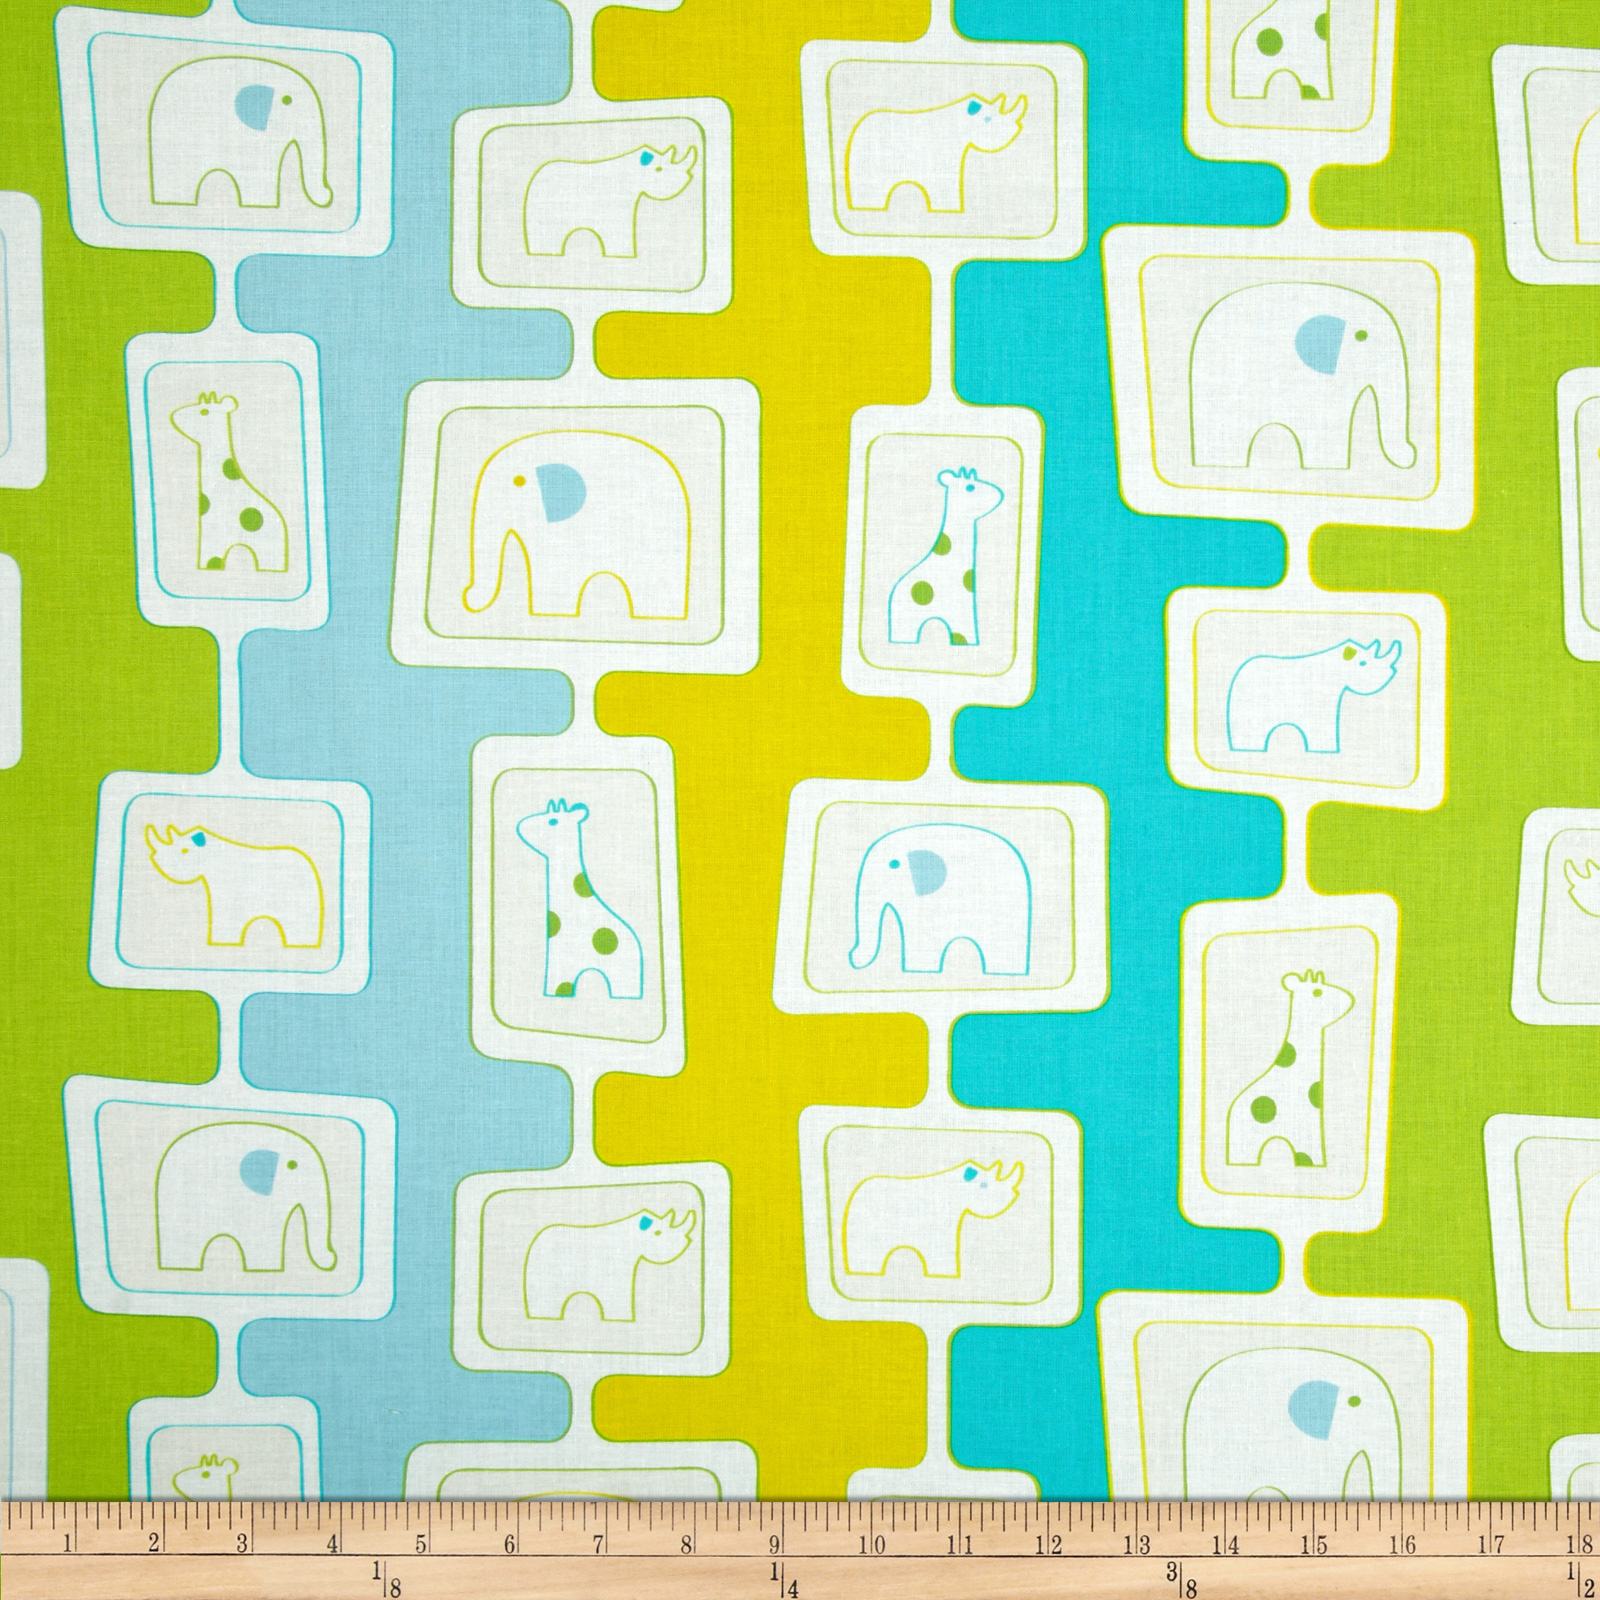 Savanna Bop Animal Stripes Yellow/Green/Light Blue Fabric